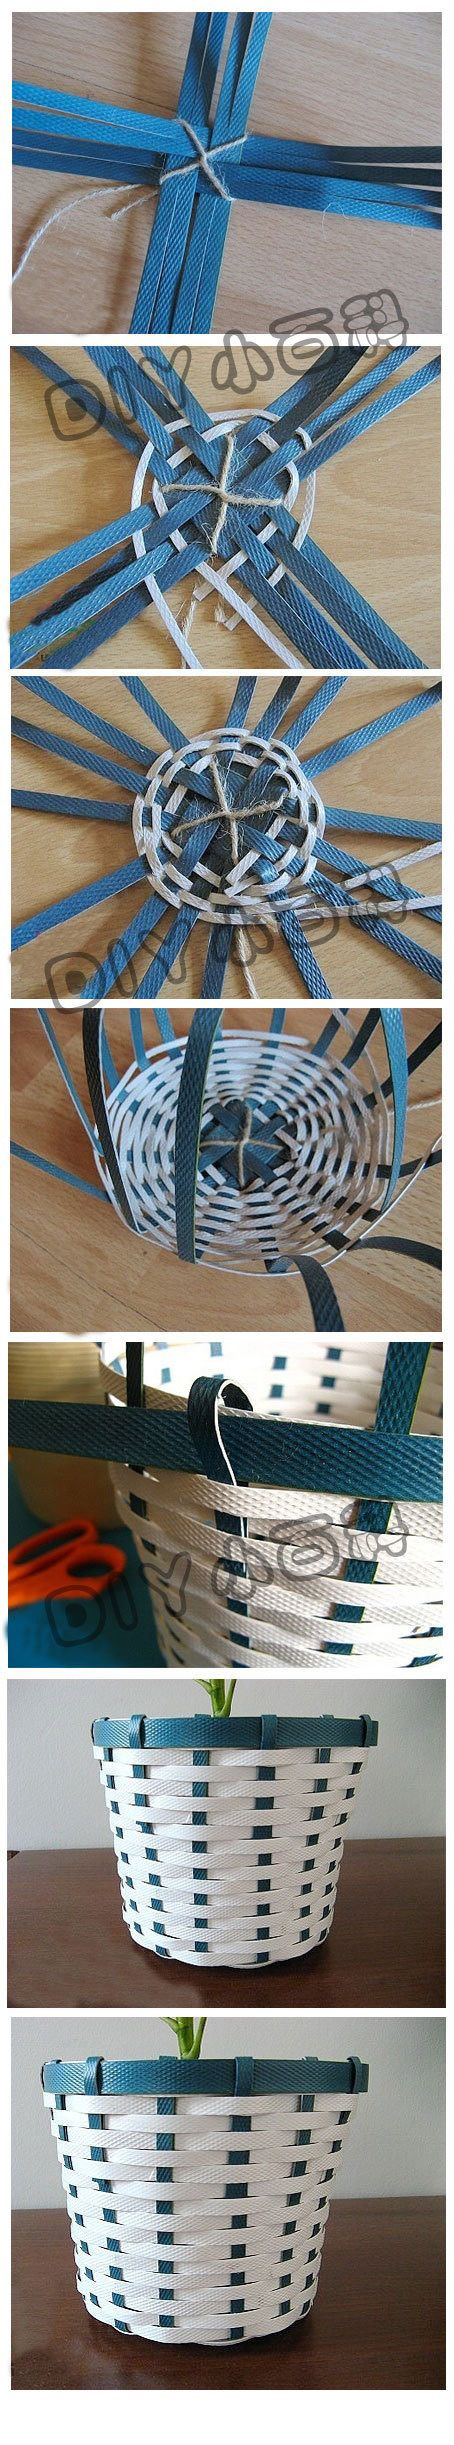 How to make your own basket